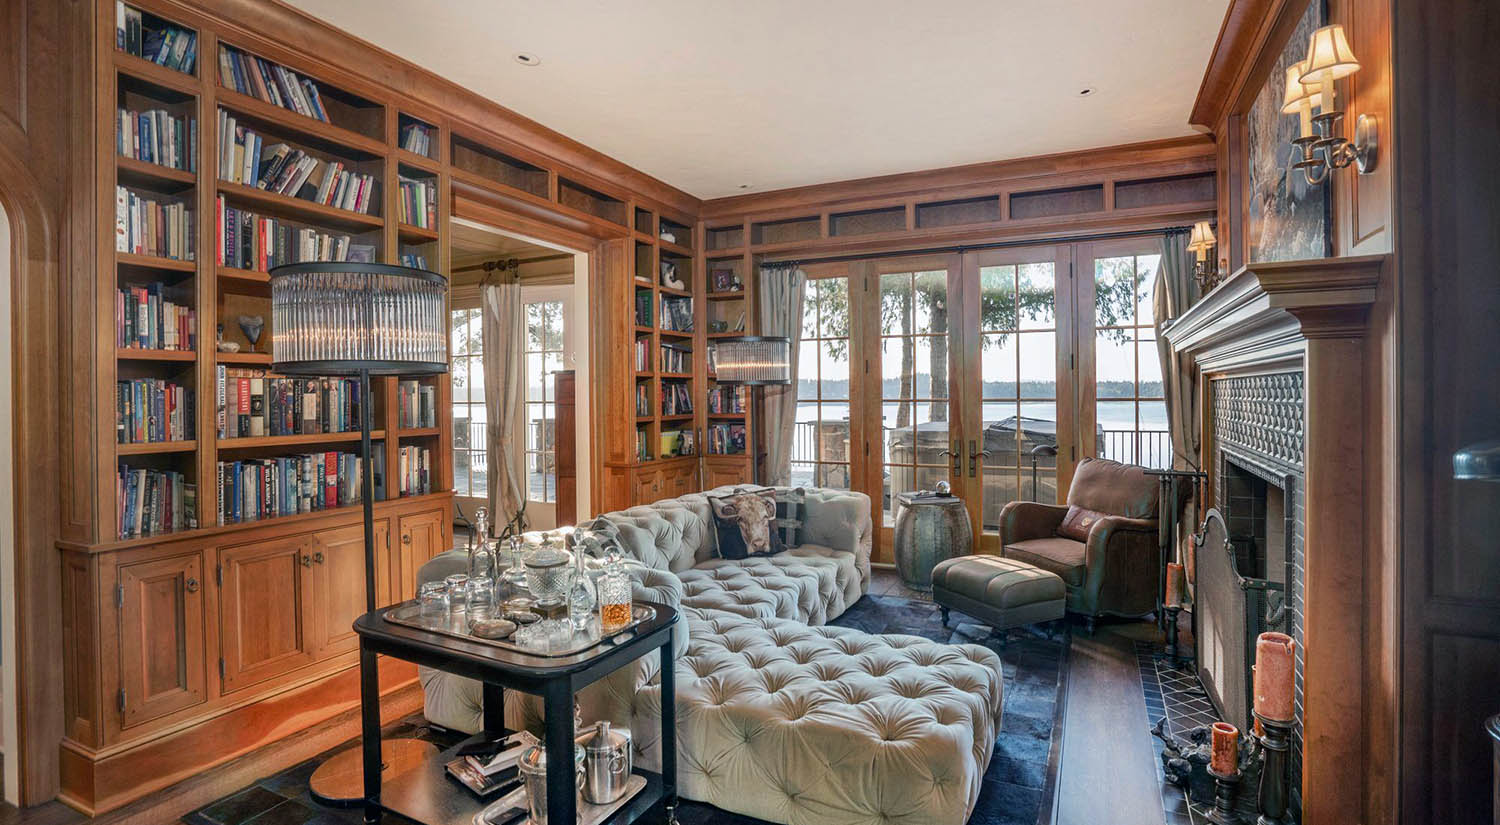 Beautiful sitting room with all wood walls and a water view. Built in shelves and cabinets.